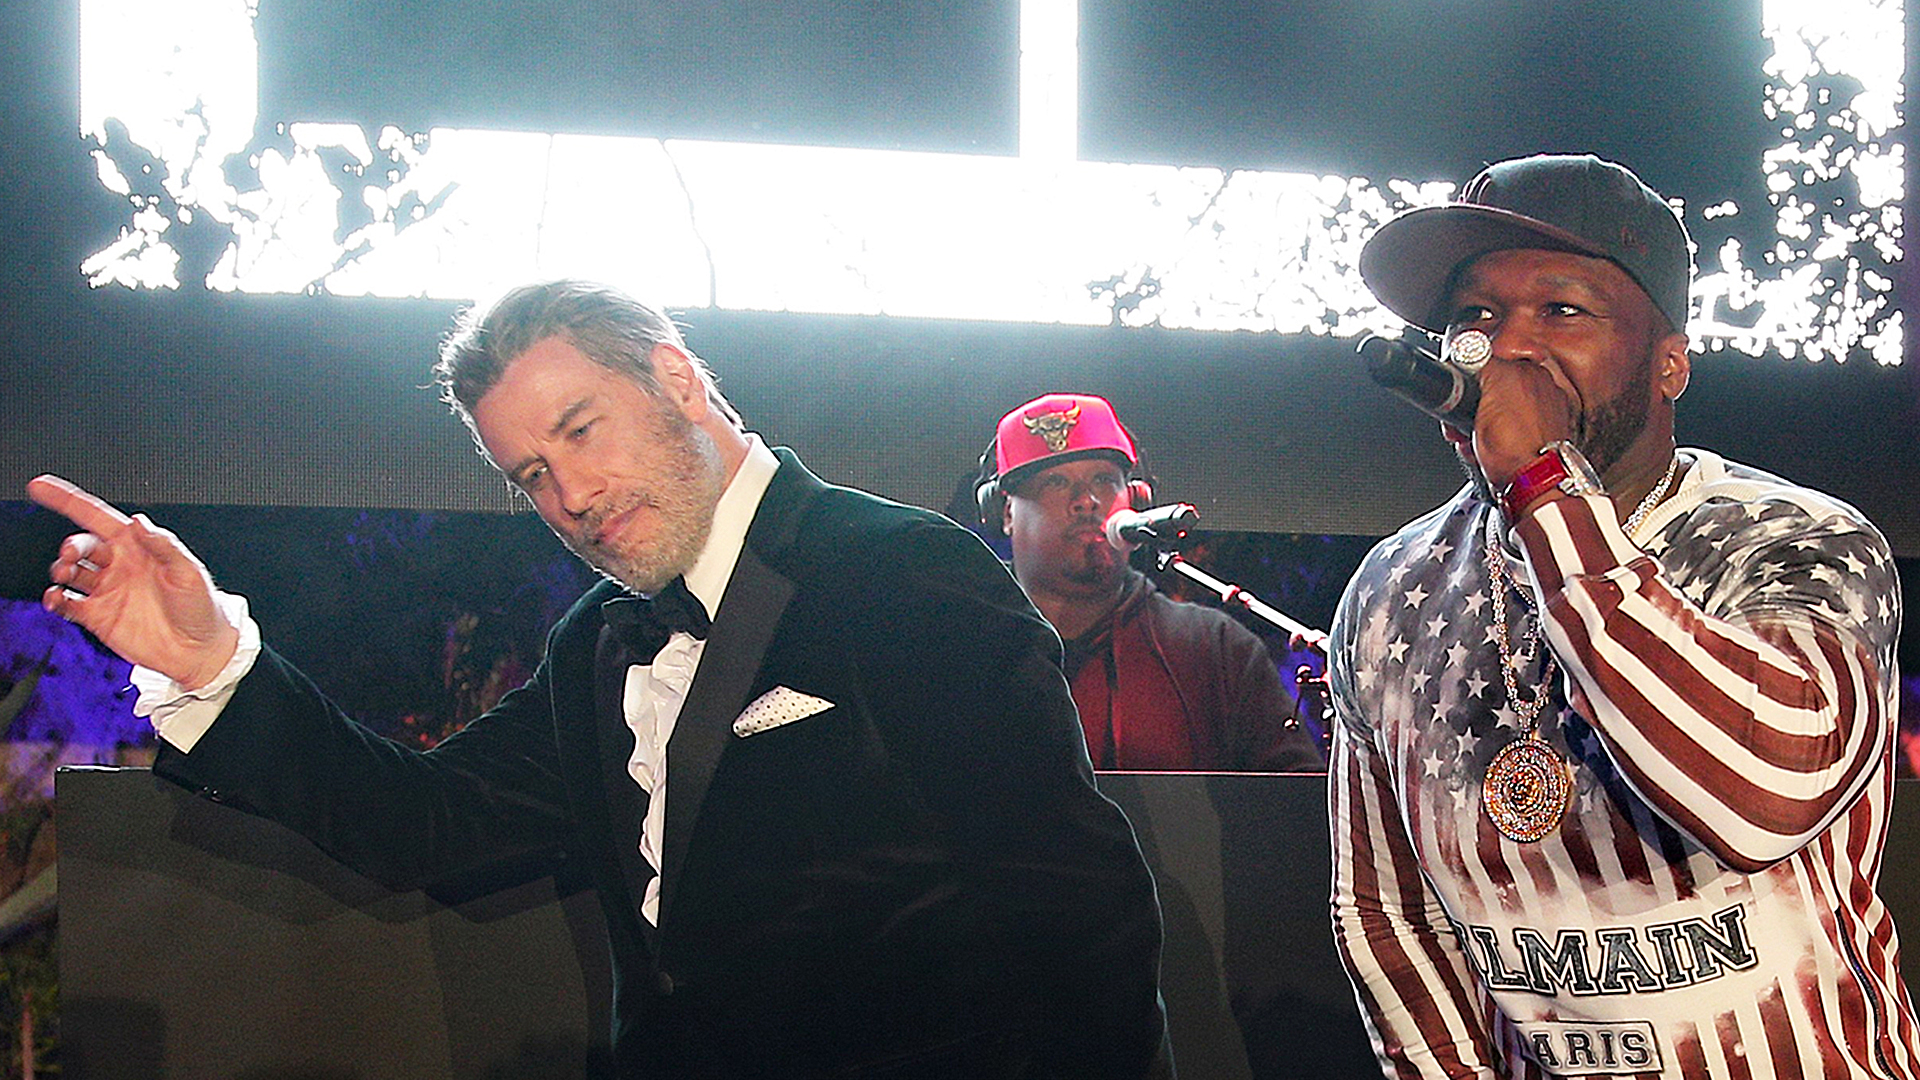 John Travolta shows ageless dance moves with 50 Cent at